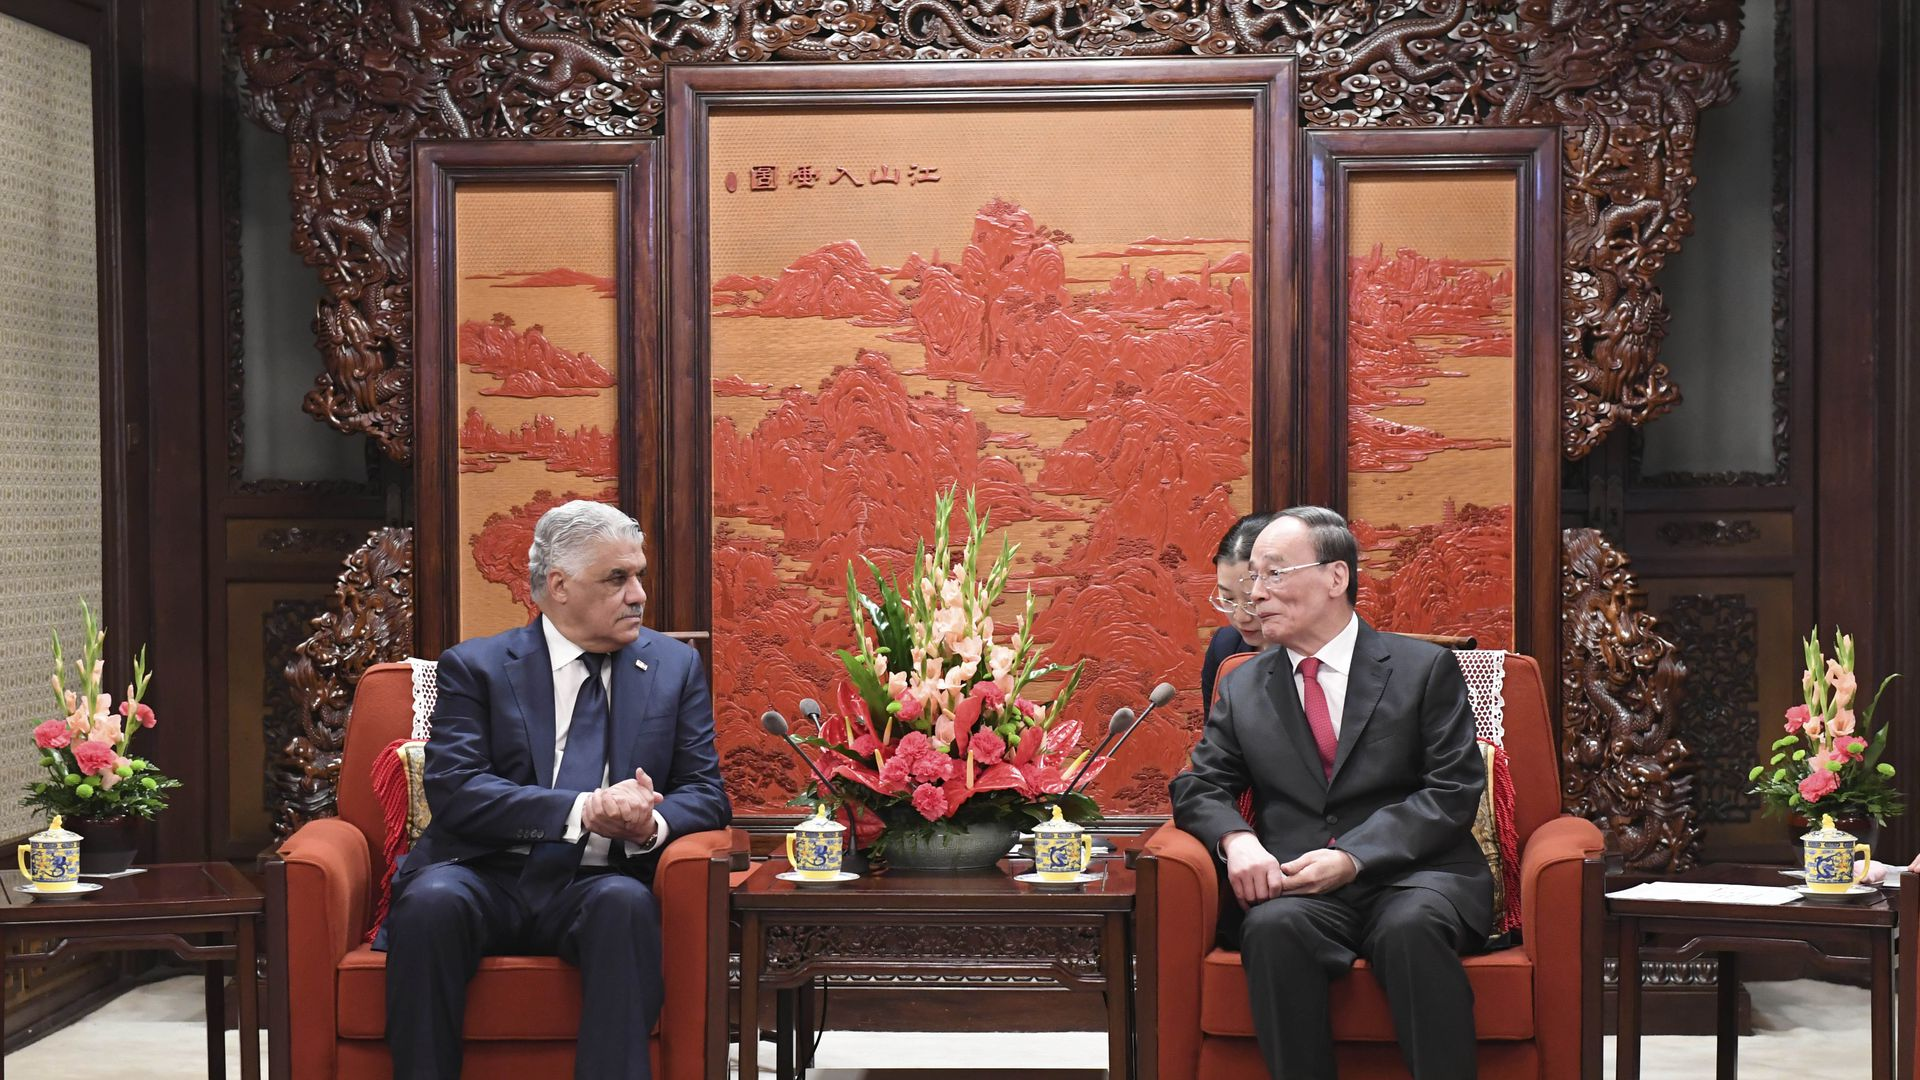 Dominican and Chinese leaders sit on armchairs in front of an orange and red painting